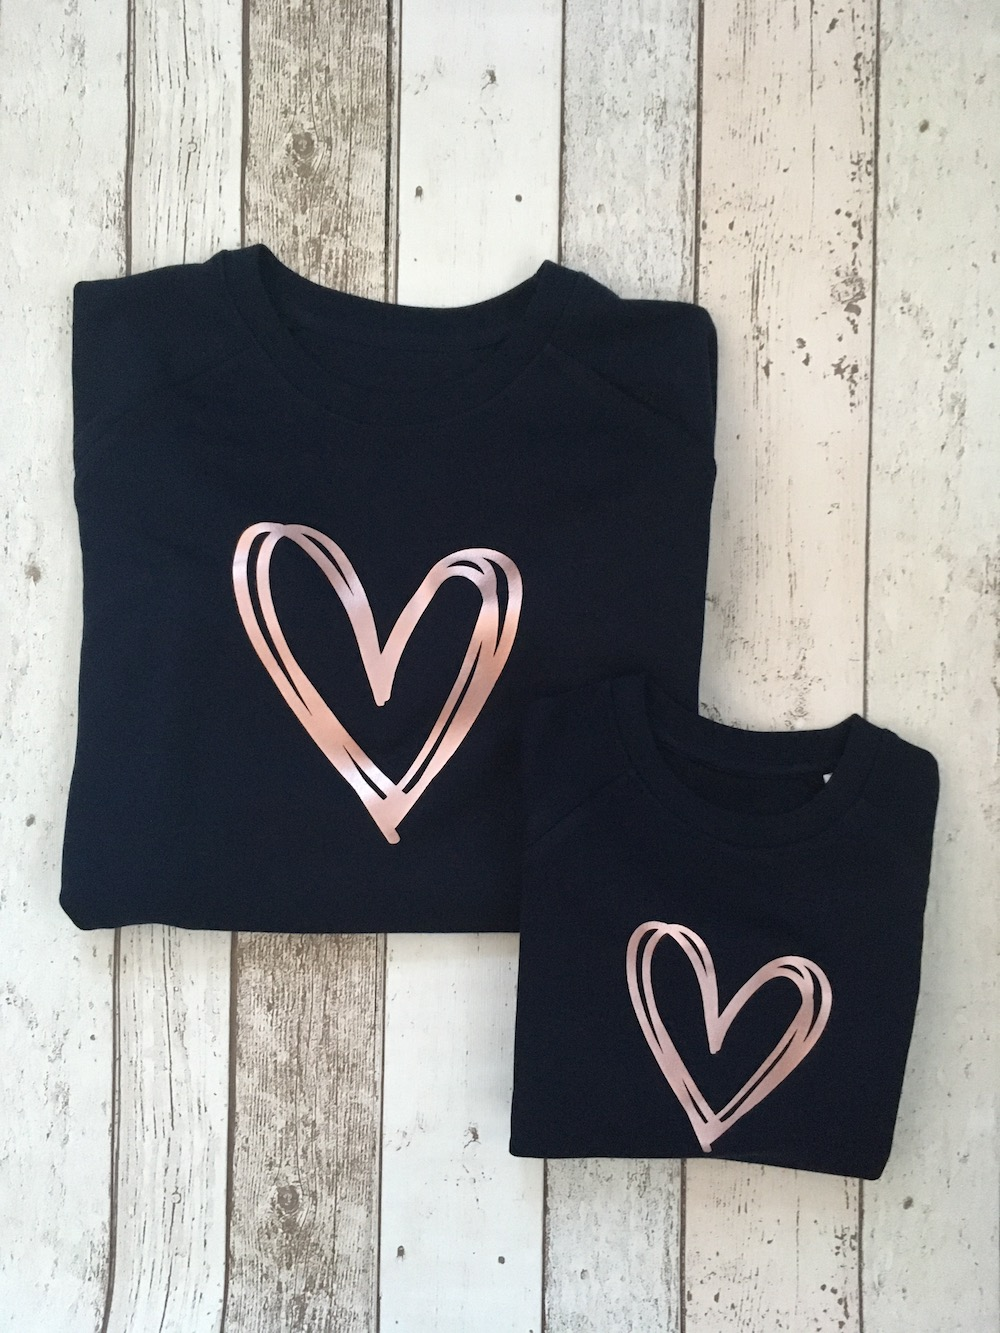 Scribble Heart Super Soft Sweatshirt Set – Navy And Rose Gold